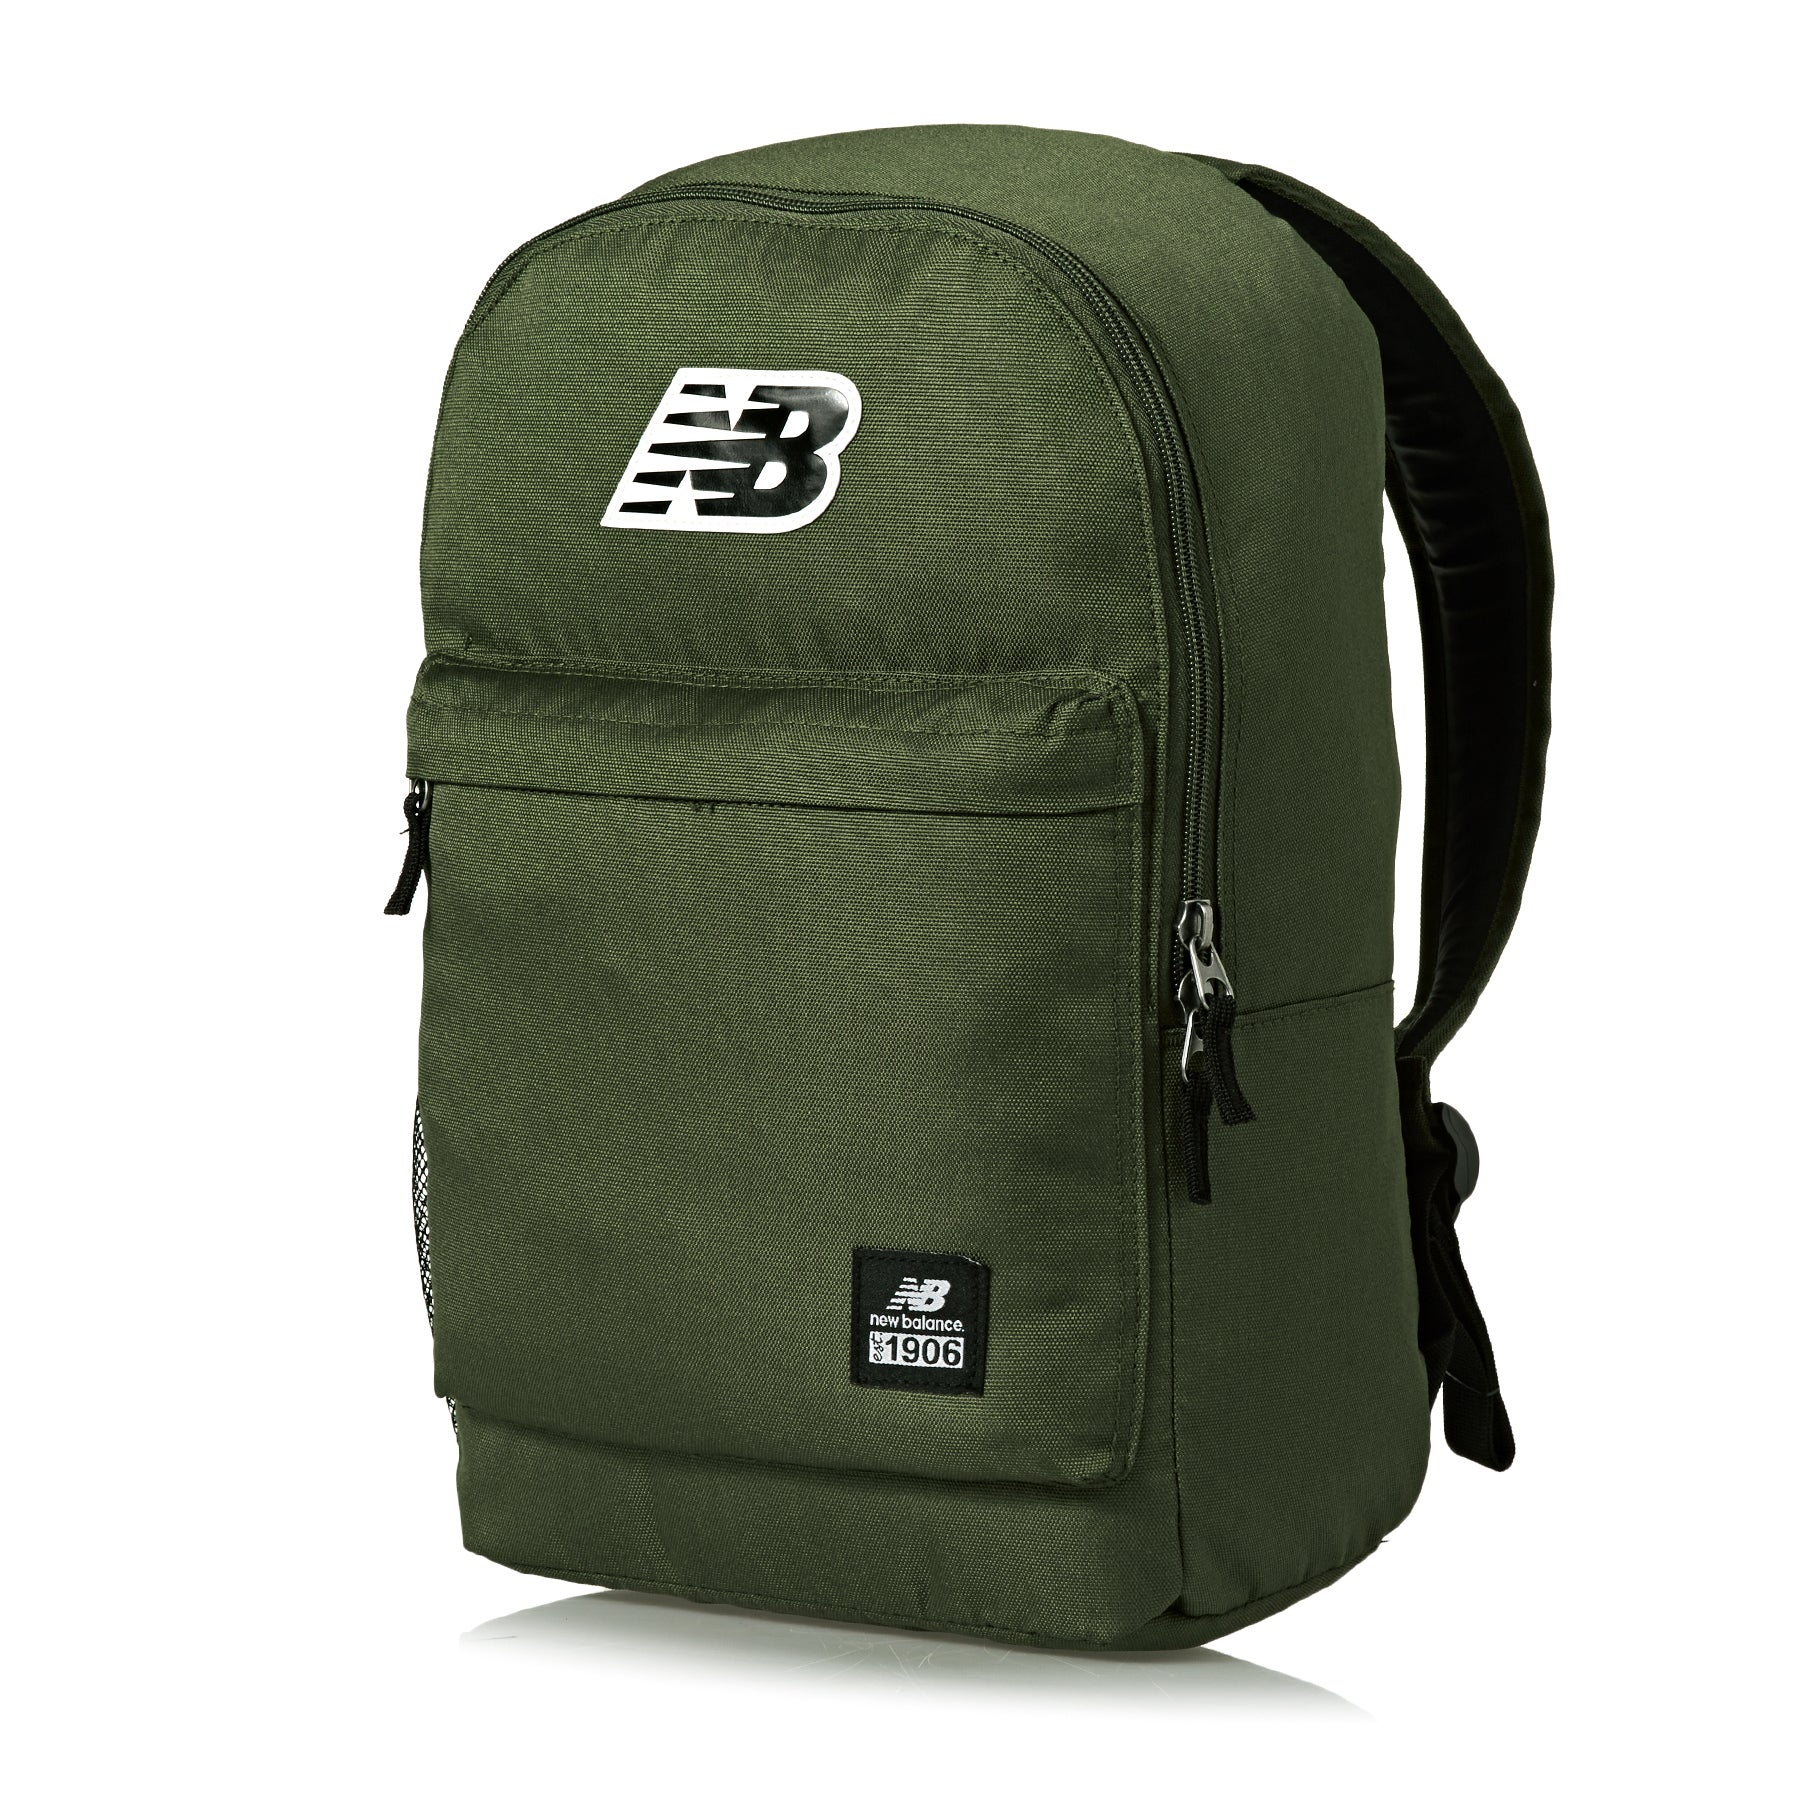 New Balance Pelham Classic V2 Backpack - Dark Covert Green